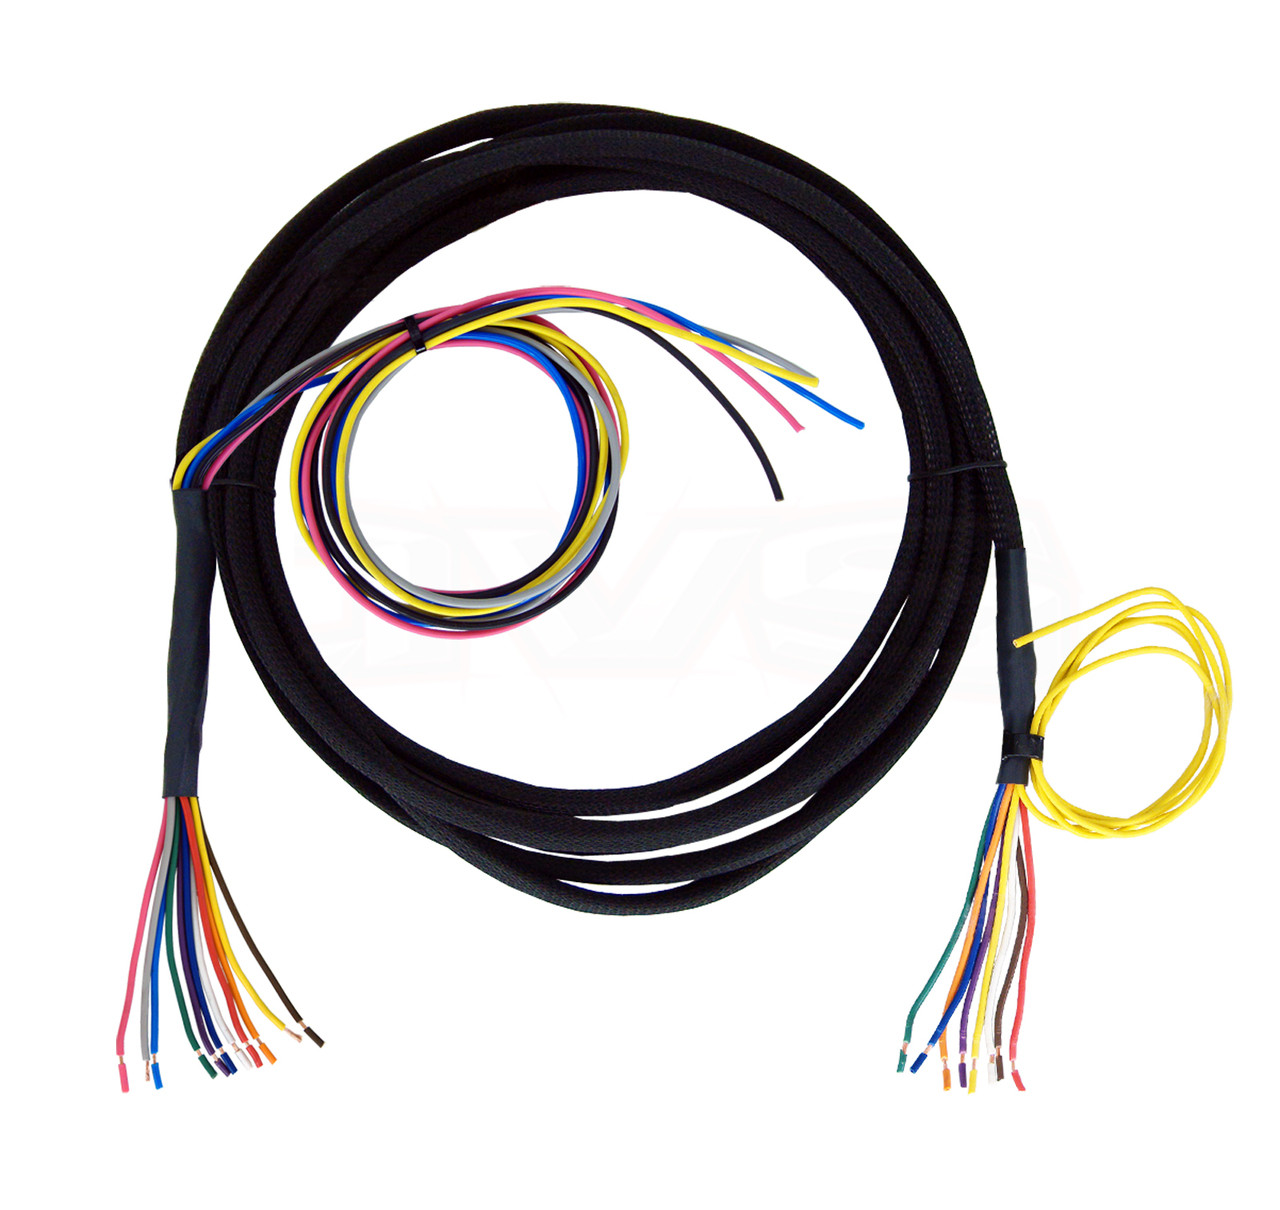 Universal Wiring Harness Trusted Schematics Diagram Truck Avs Valve 10 15 20 To Stripped Wires Painless